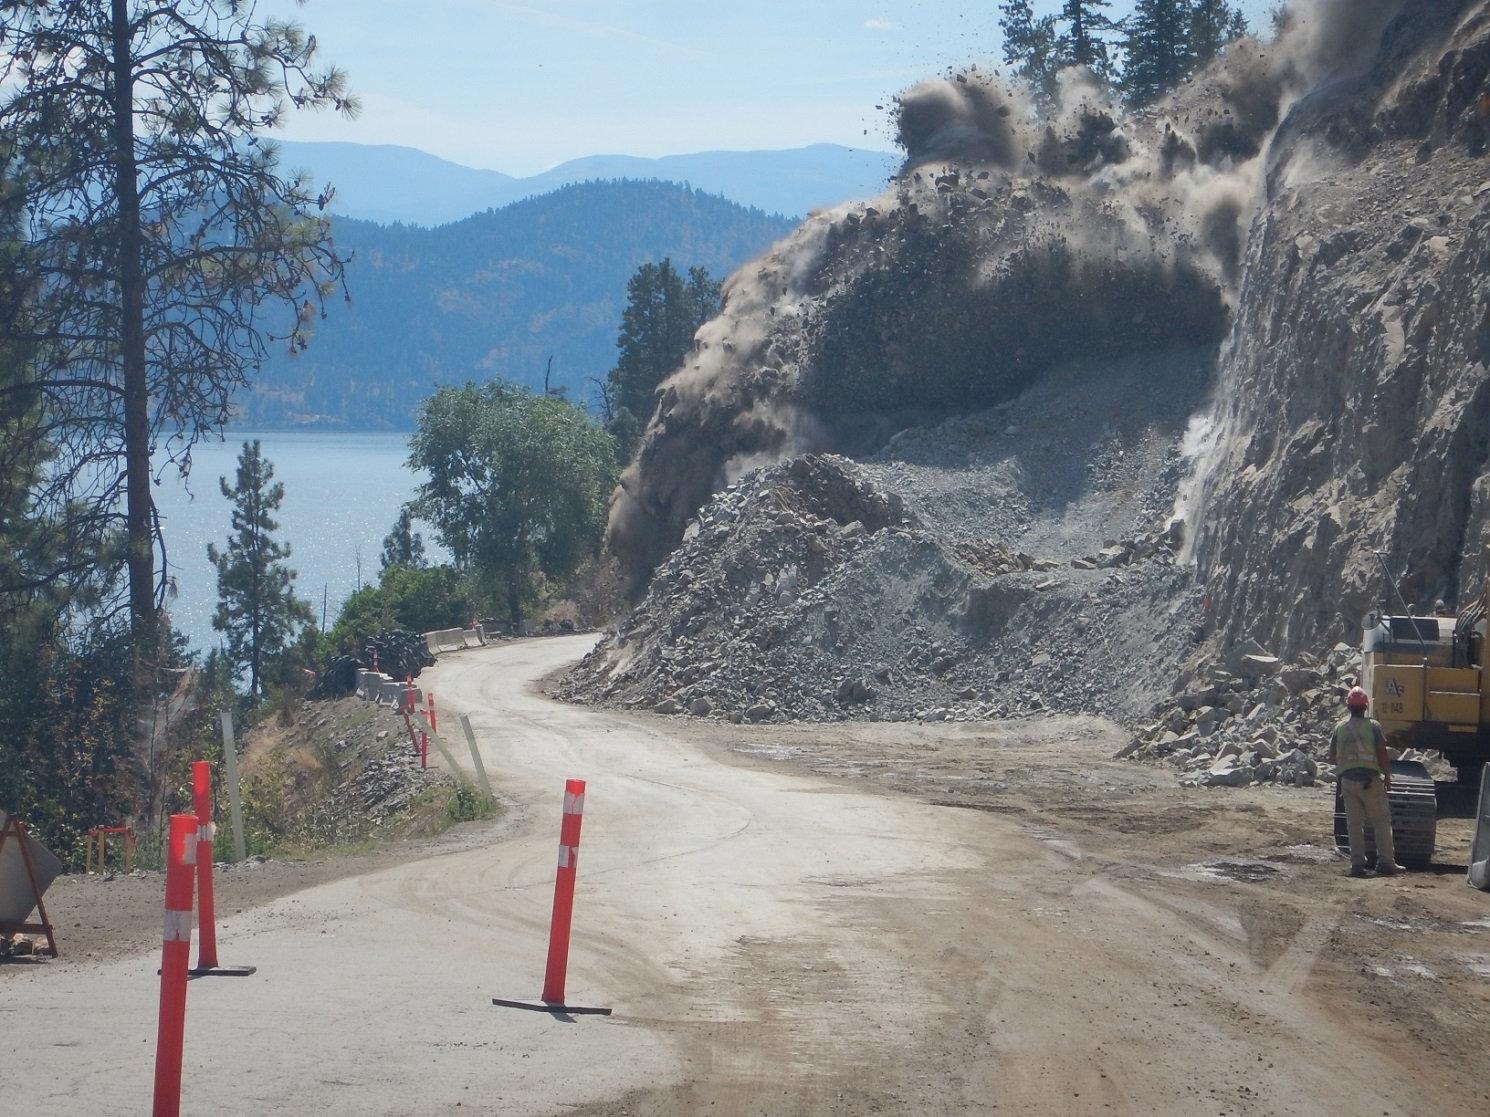 A Westside Road Story – Breathtaking Route Being Improved